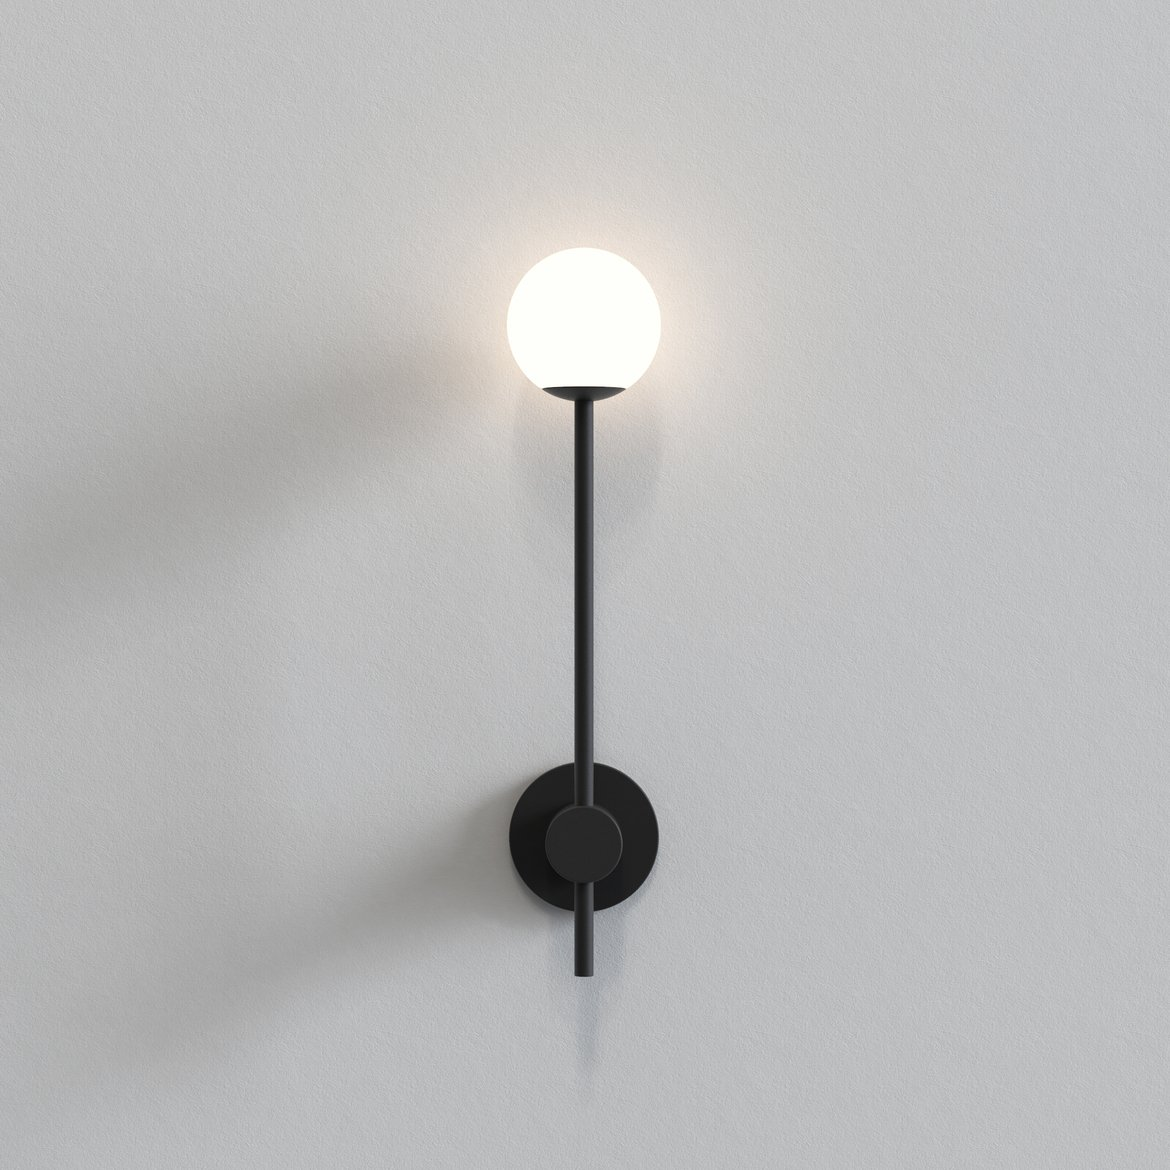 Astro Lighting 1424004 Orb Single Matt Black Wall Light